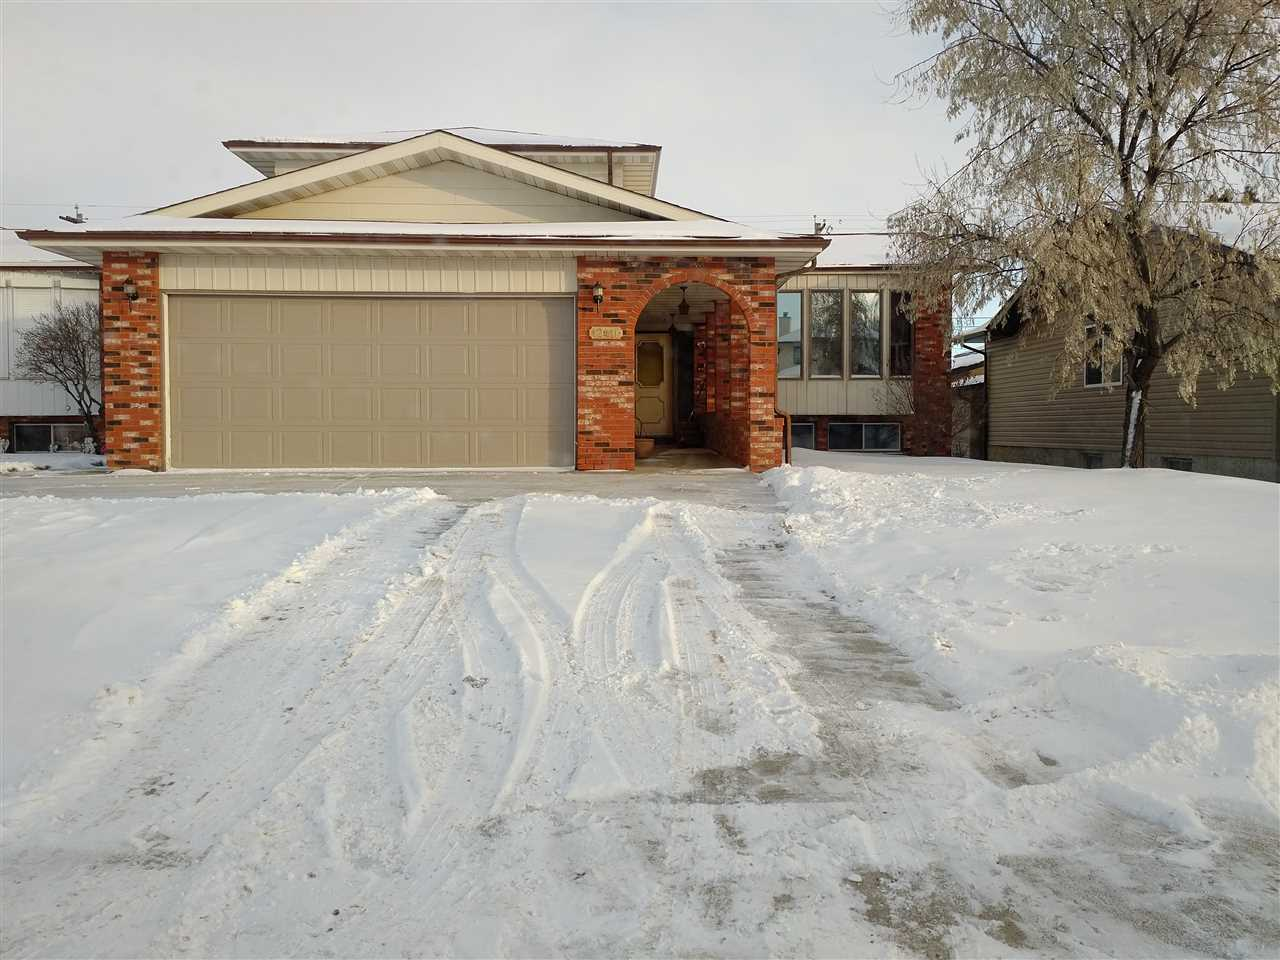 Opportunity is calling with this large home with good bones needing upgrading. This home has 3 bedrooms up with master bedroom en-suite and walk in closet, there is an additional 2 bedrooms and 4 piece bathroom. The main area has a large den with a closet so it may be used as an additional bedroom, a living room, dining room, large eat in kitchen, a family room with wood burning fireplace and patio doors to the back yard, a two piece bathroom, laundry room and access to the double insulated and dry-walled garage. The 4th level has been dry-walled and requires flooring and ceiling and offers a large family/rec room. The 5th level has another wood burning fireplace, storage rooms, roughed in plumbing and laundry. The shingles are about 5 years old. This diamond in the rough is nestled among larger homes in an older established community with quick access to the Yellowhead and Anthony Henday. Great opportunity for those needing a large home as with a little elbow grease this home will sparkle.